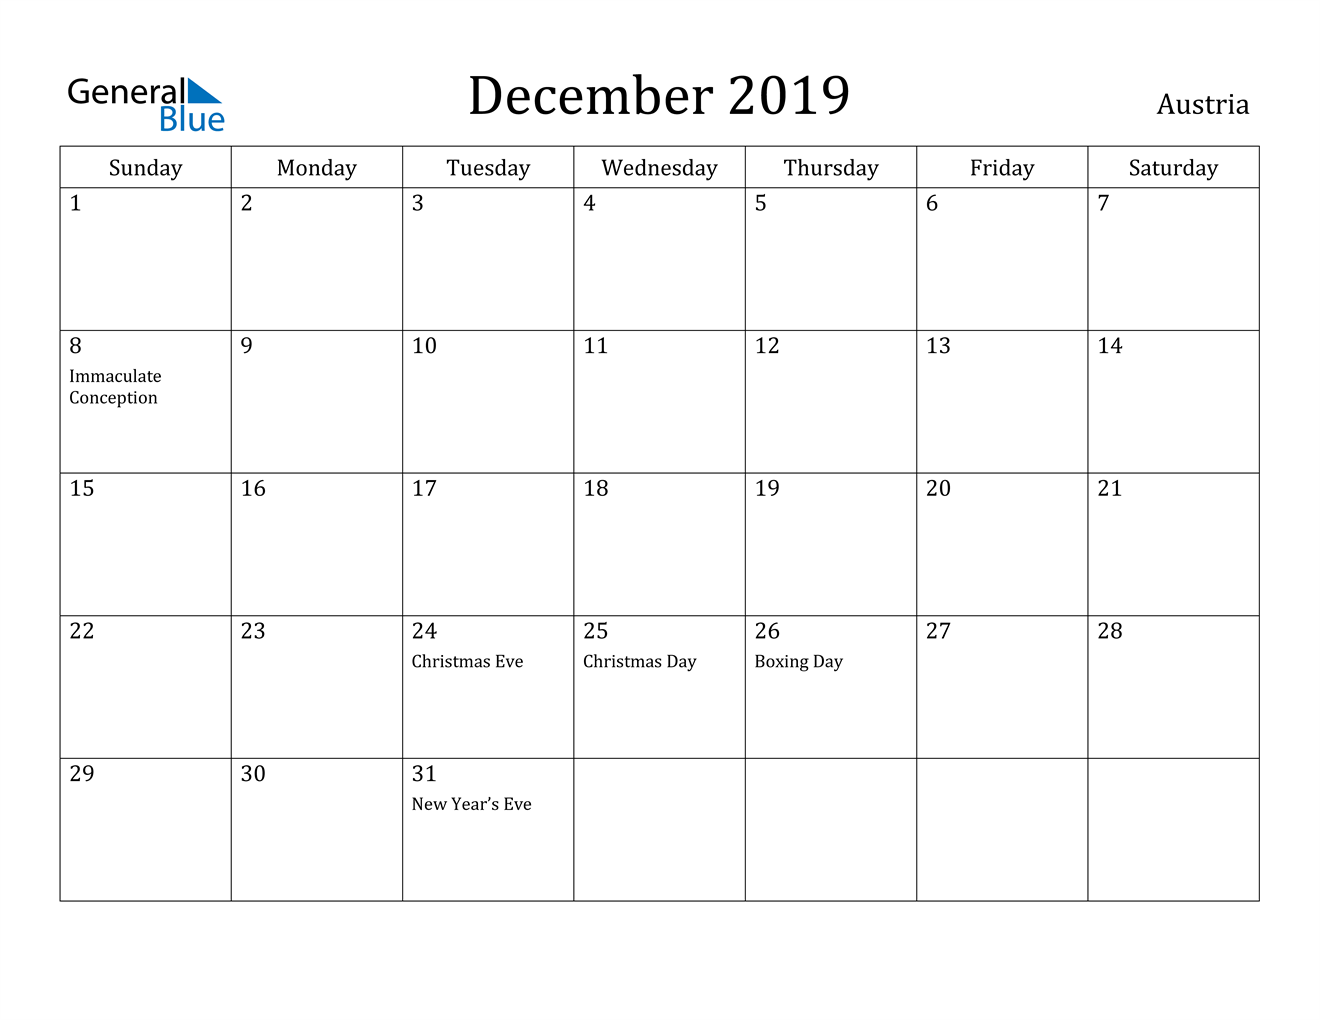 Image of December 2019 Austria Calendar with Holidays Calendar